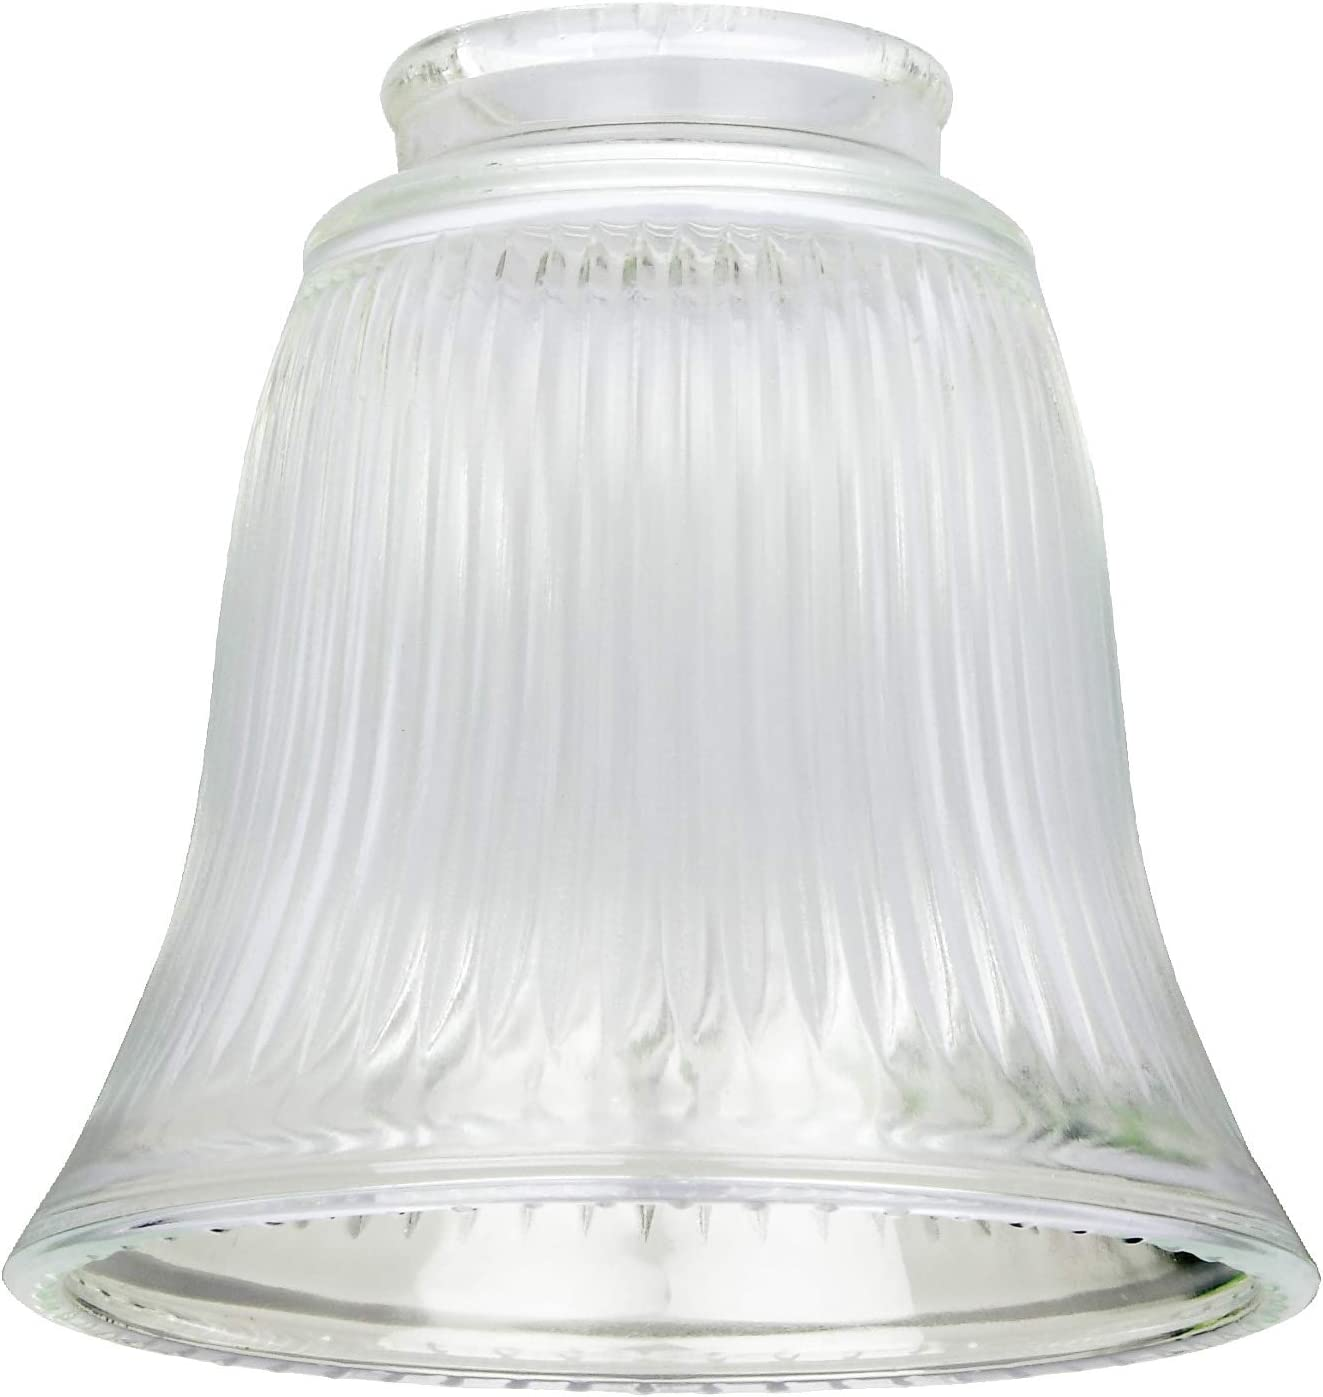 Westinghouse Lighting Tulipa Acampanada Estriada, Blanco: Amazon ...